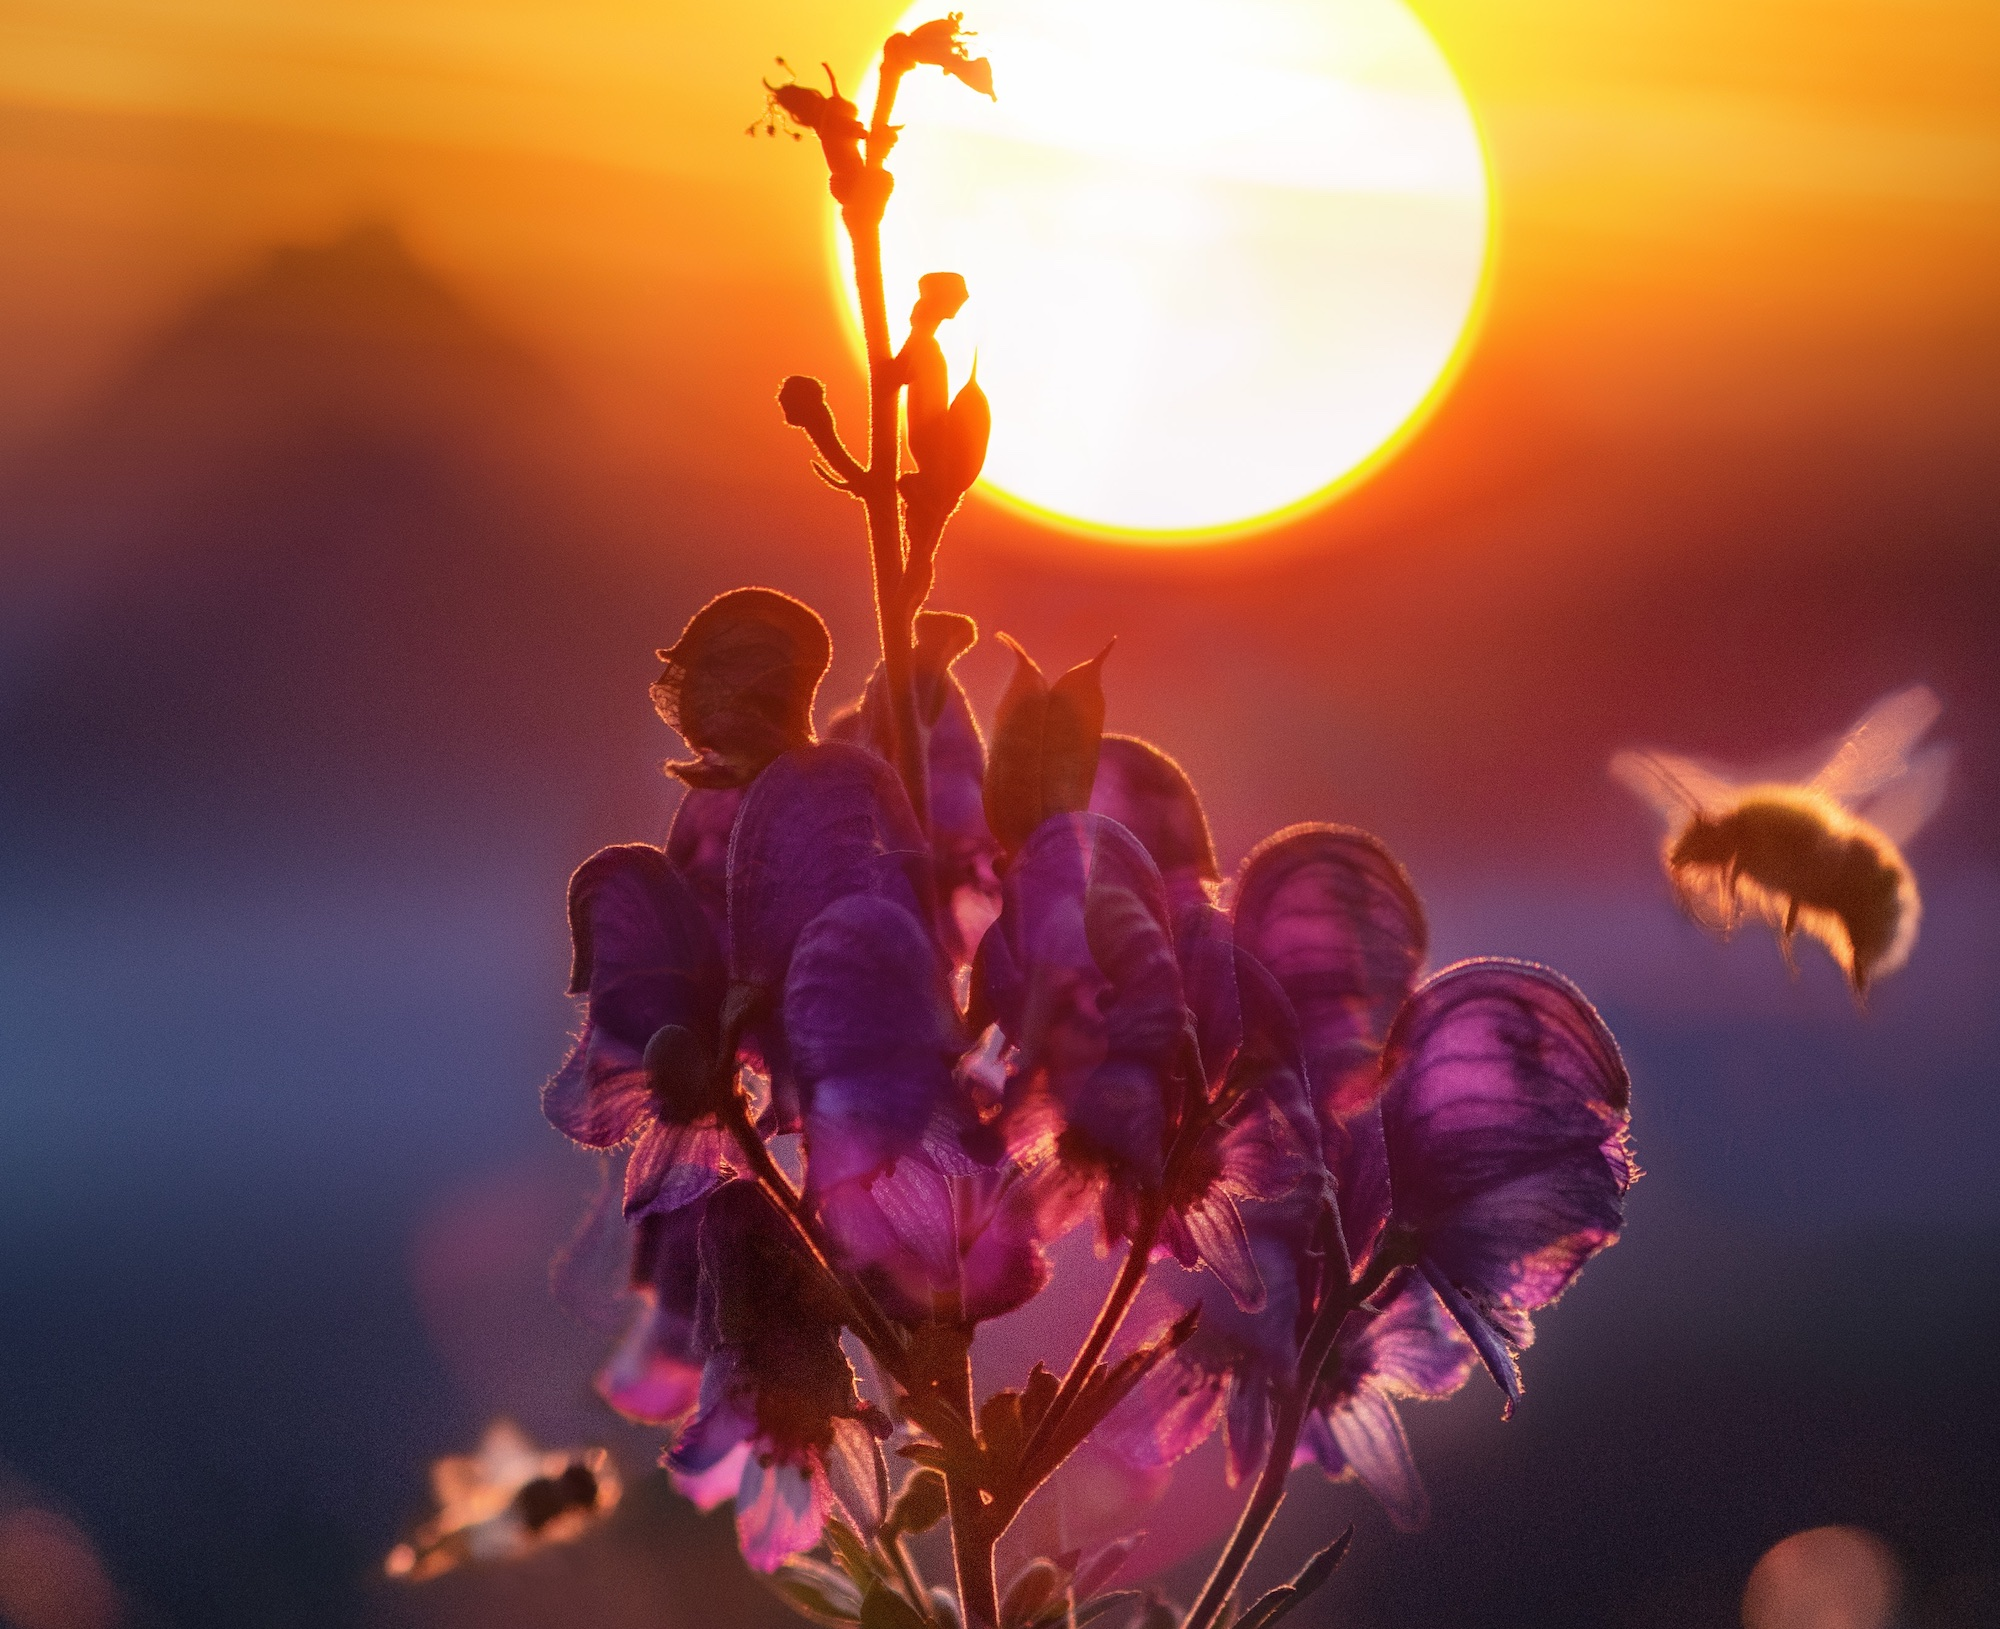 image of flower with bees